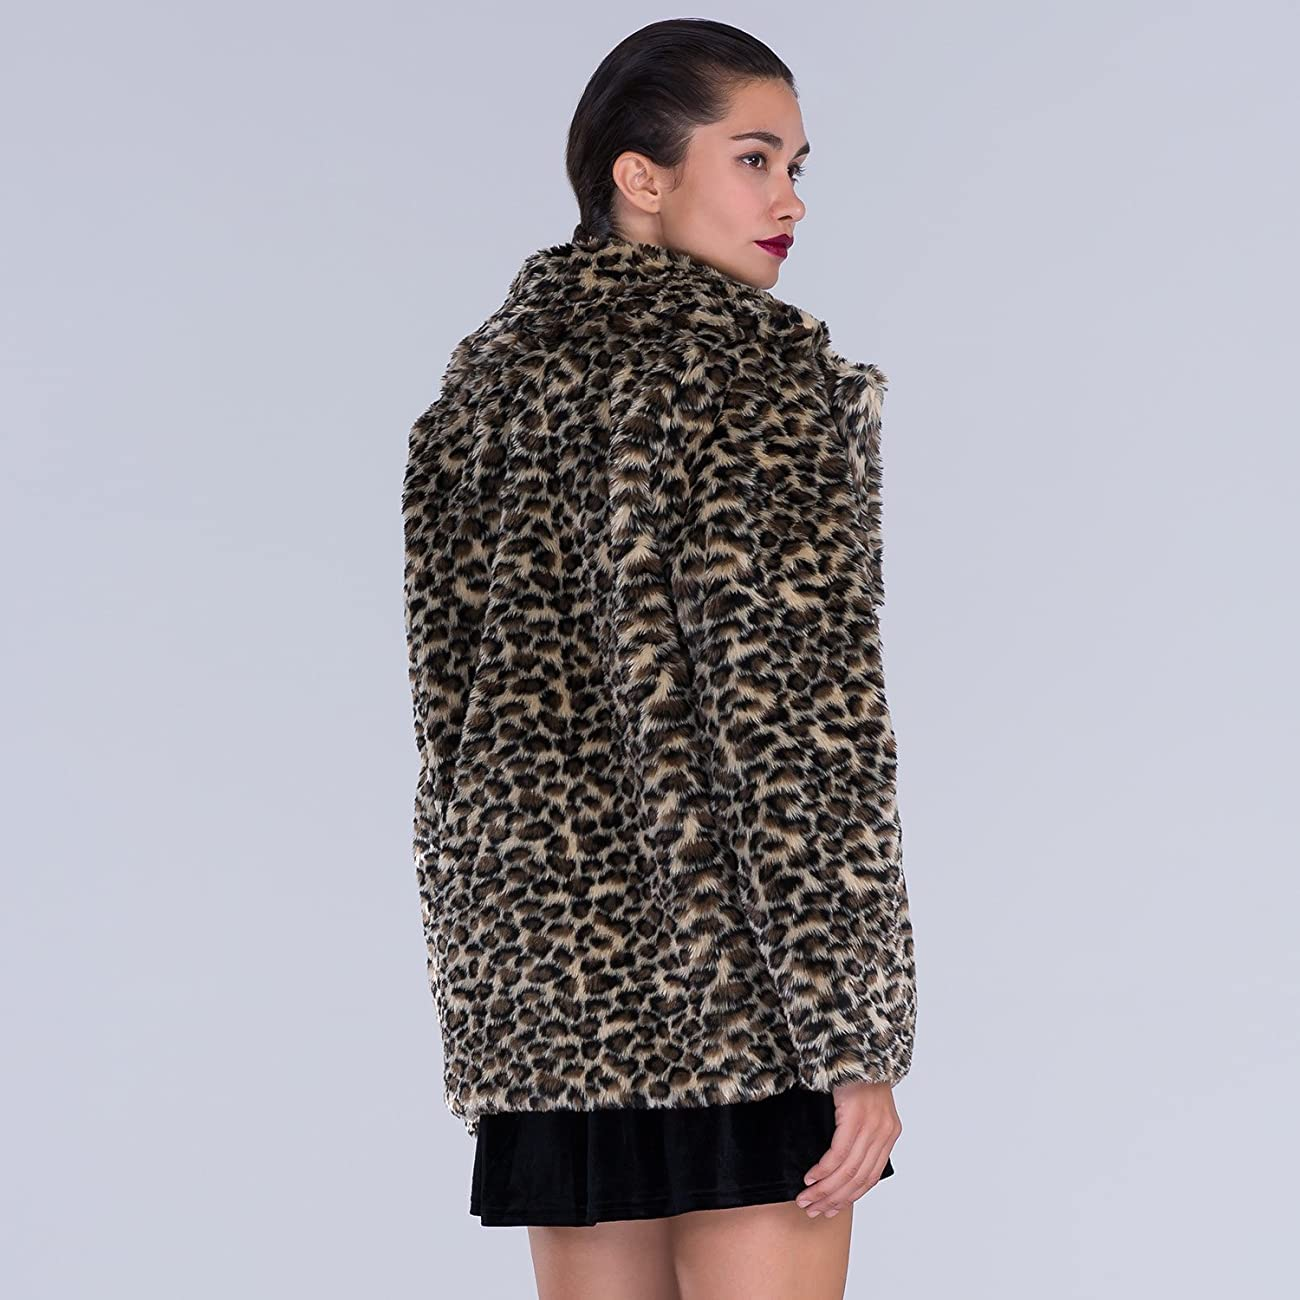 Choies Women Elegant Vintage Leopard Print Lapel Faux Fur Coat Fall Winter Outwear 2